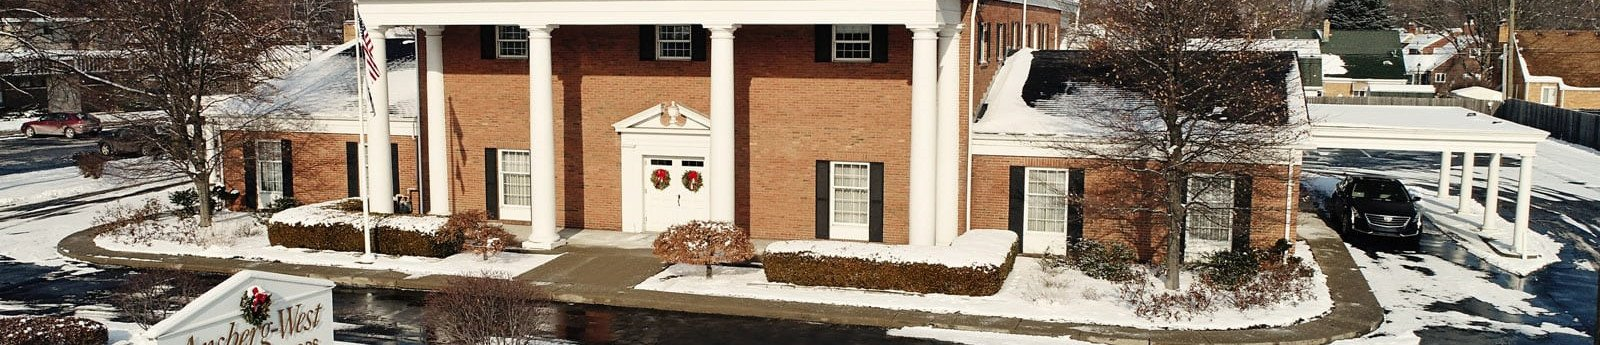 Contact Us | Ansberg West Funeral Home